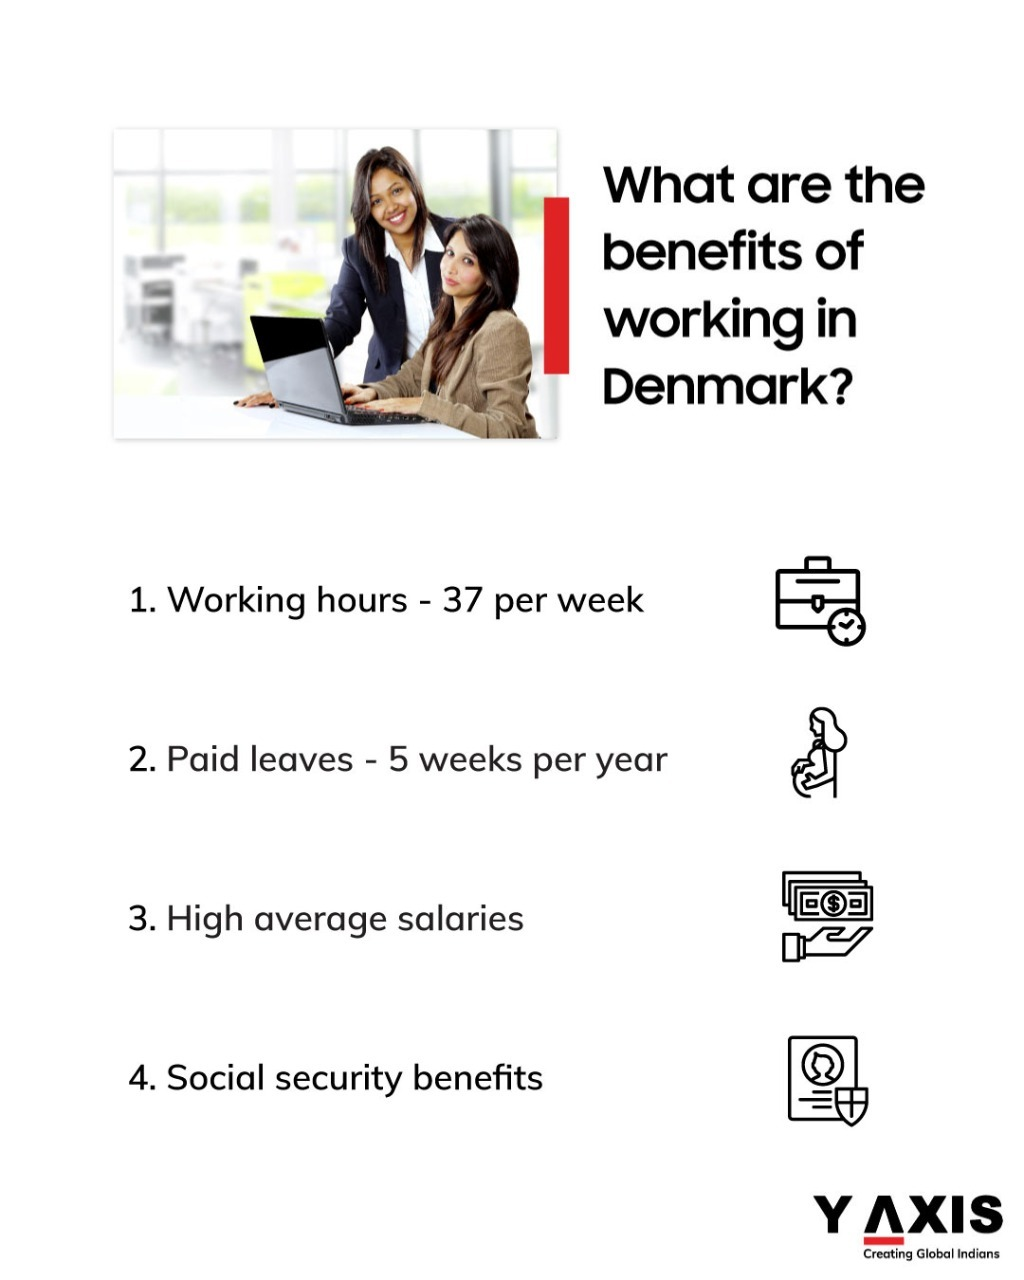 The benefits you will get if you work in Denmark